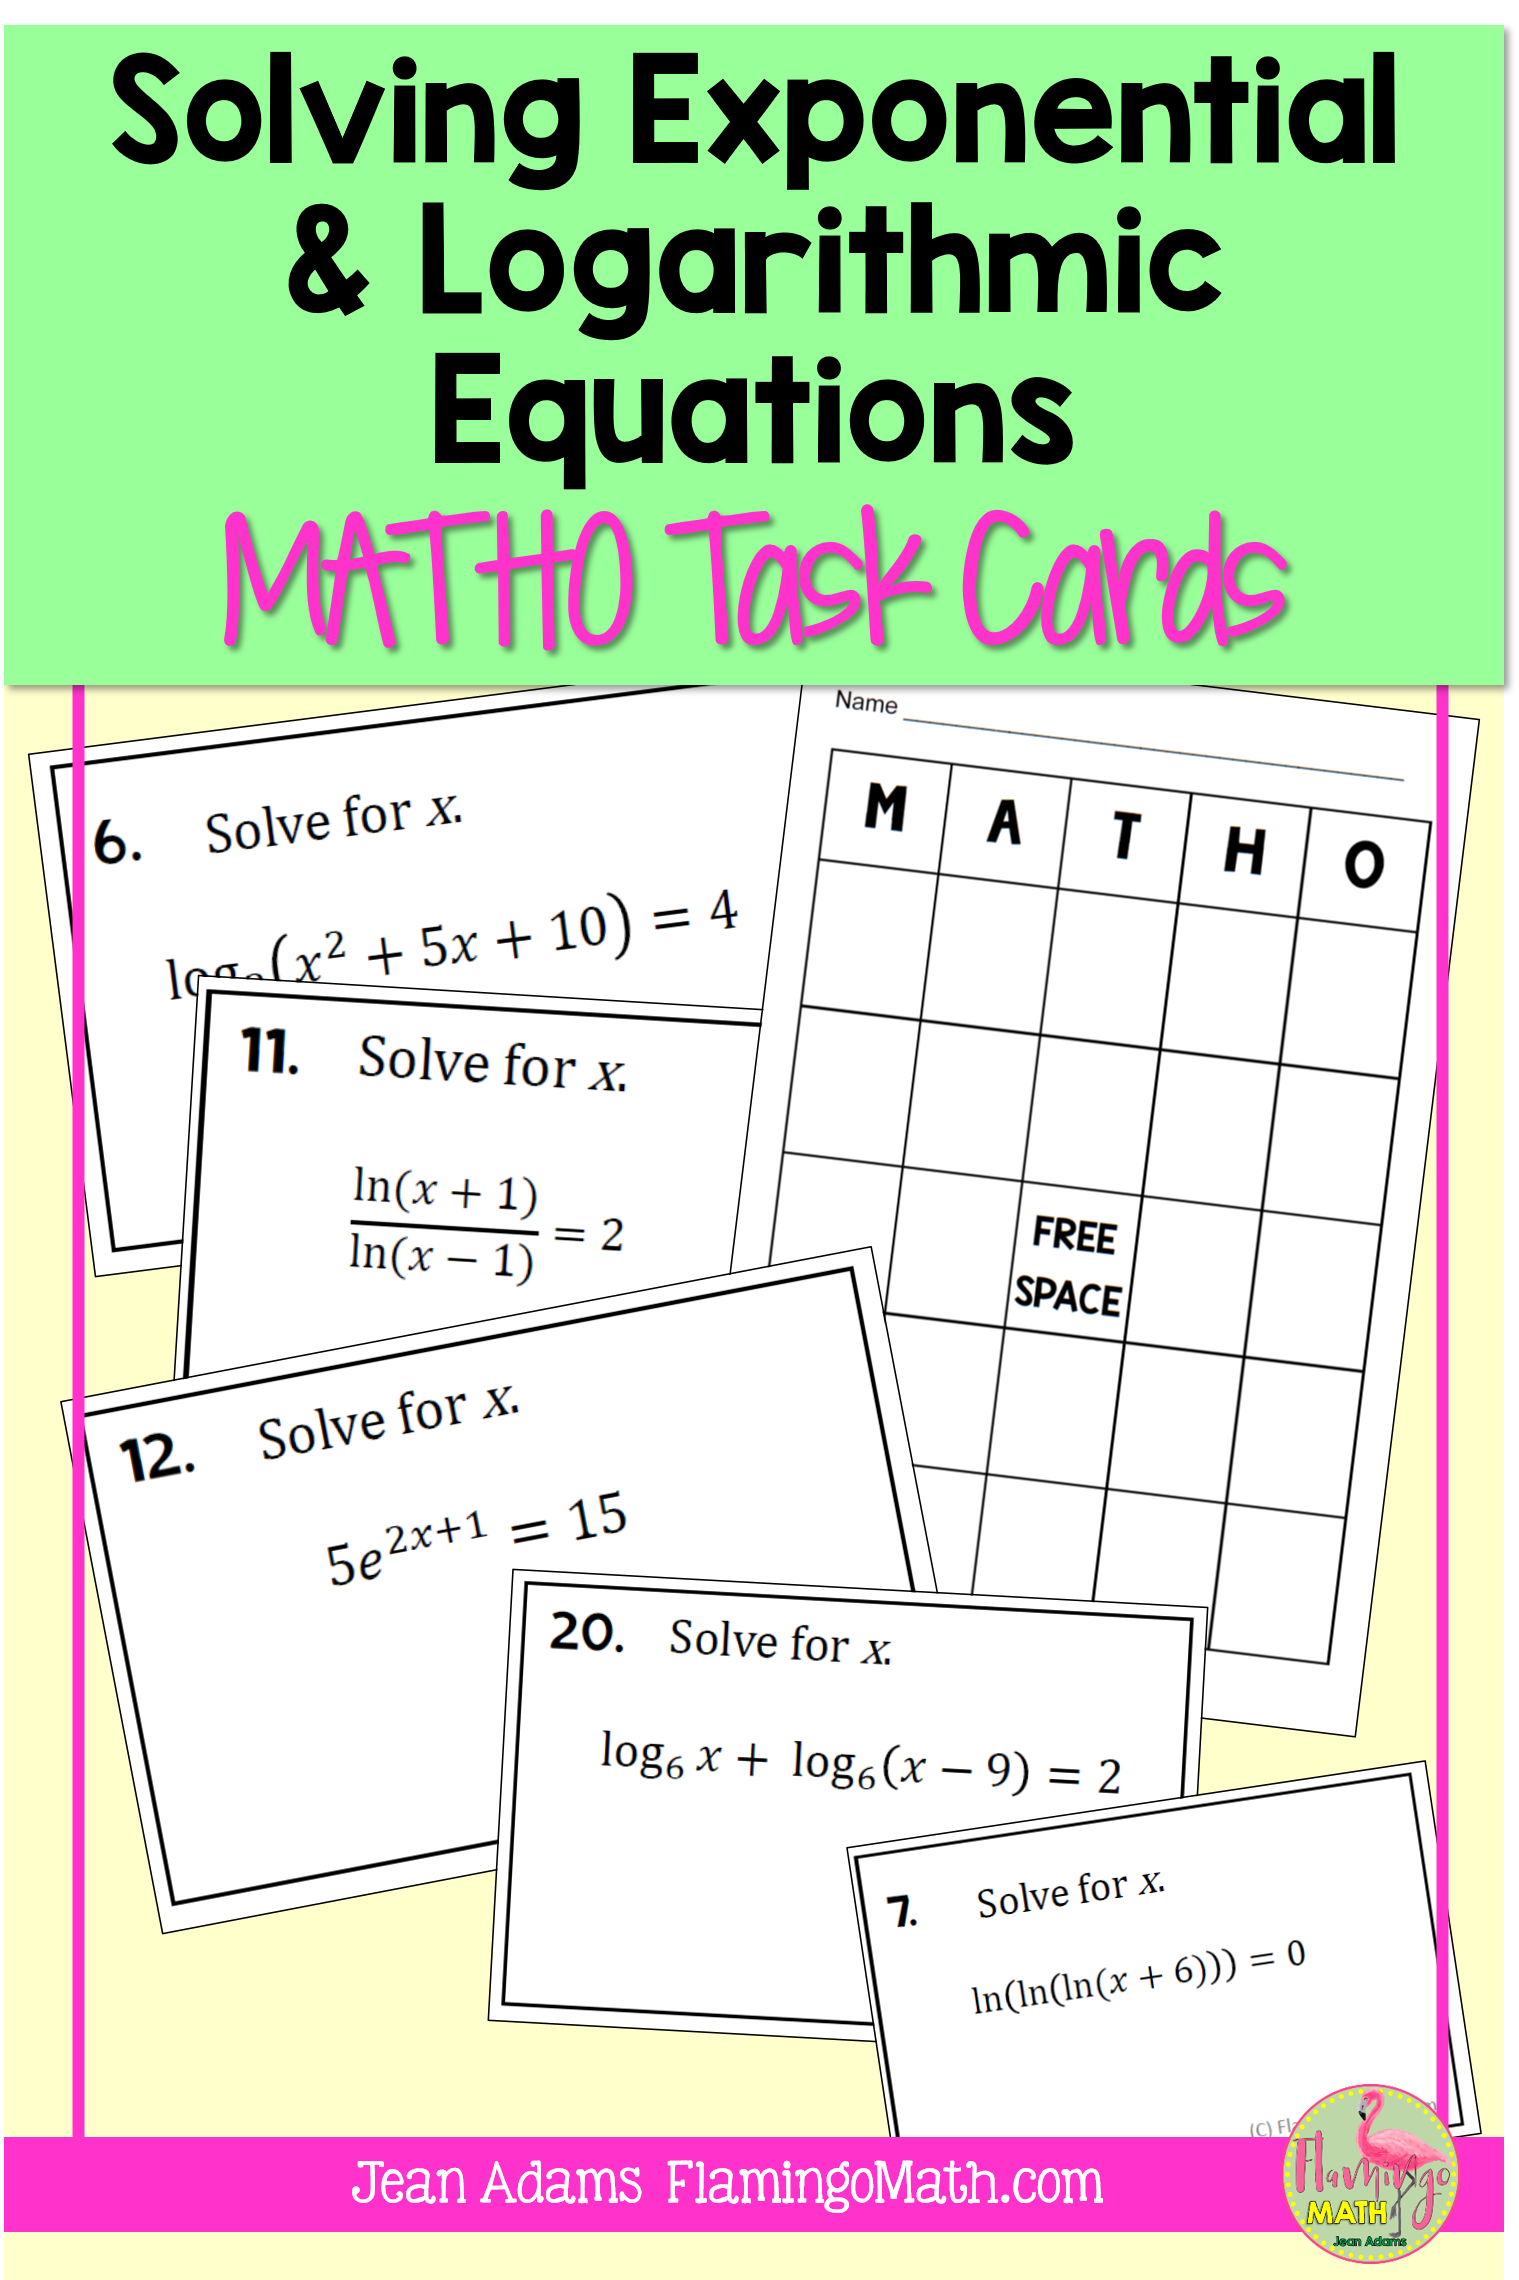 Pin On Jean Adams Flamingo Math Tpt Store